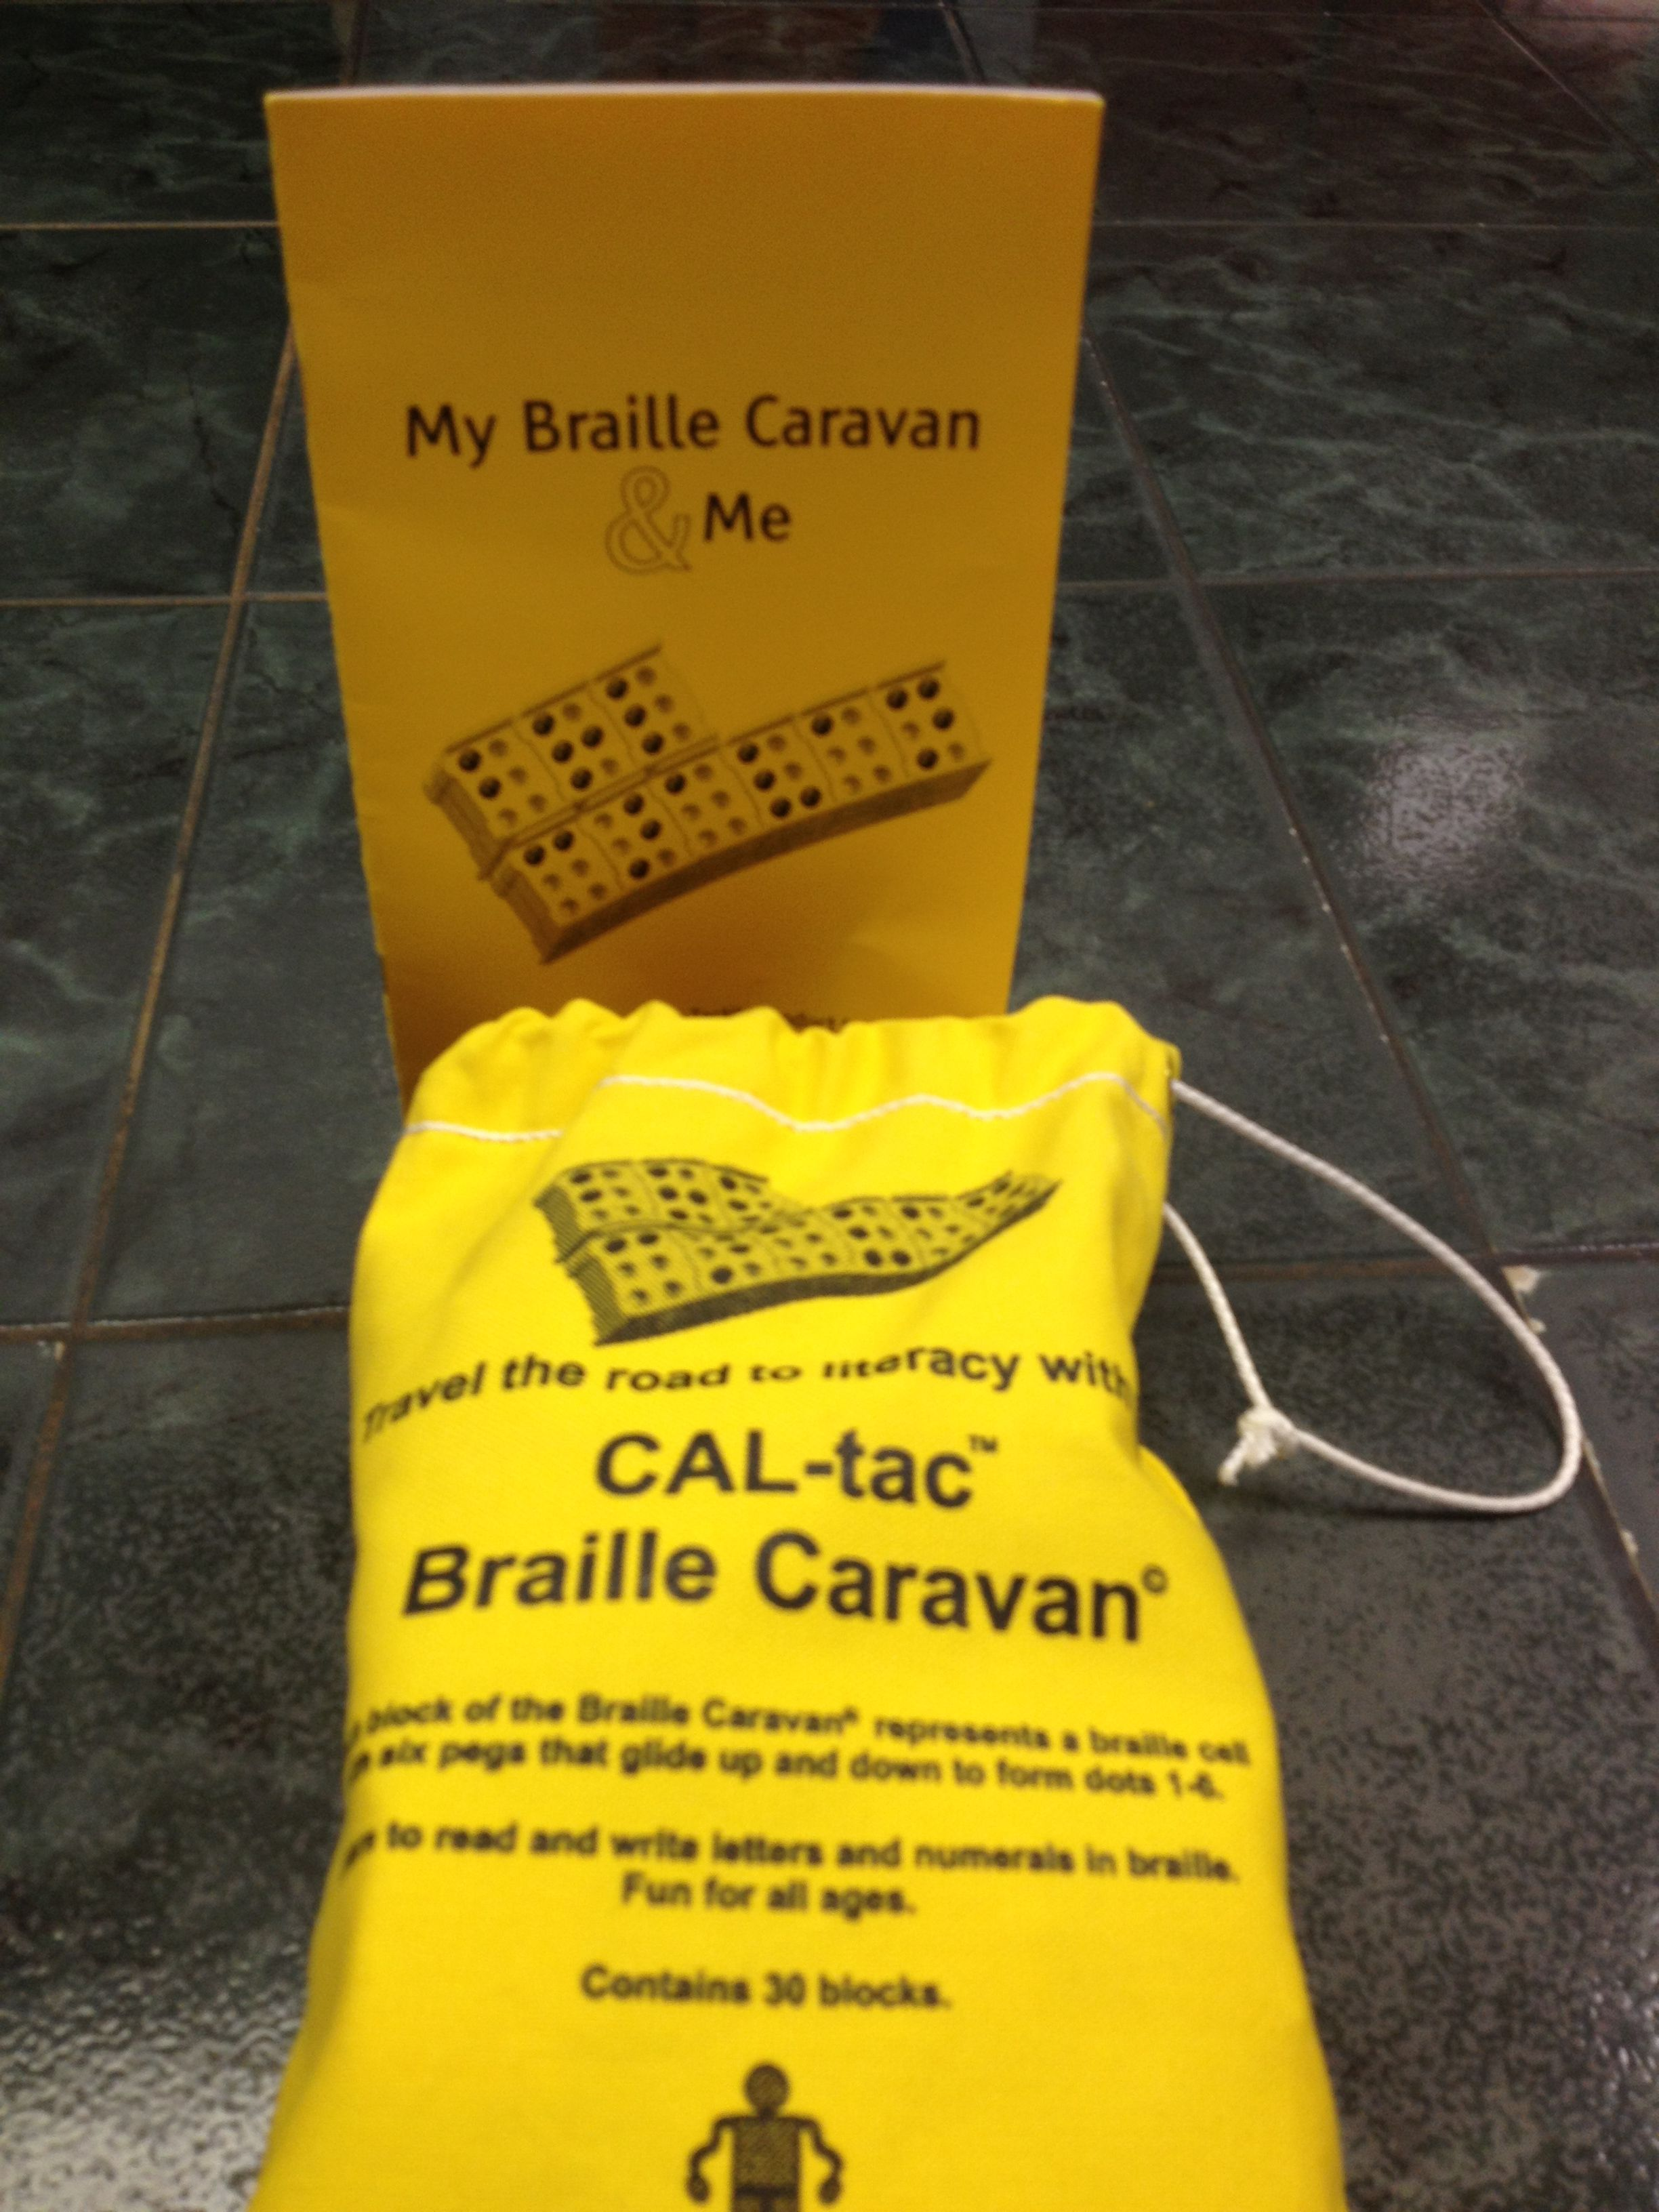 Braille Caravan Provides Connecting Blocks To Form Words